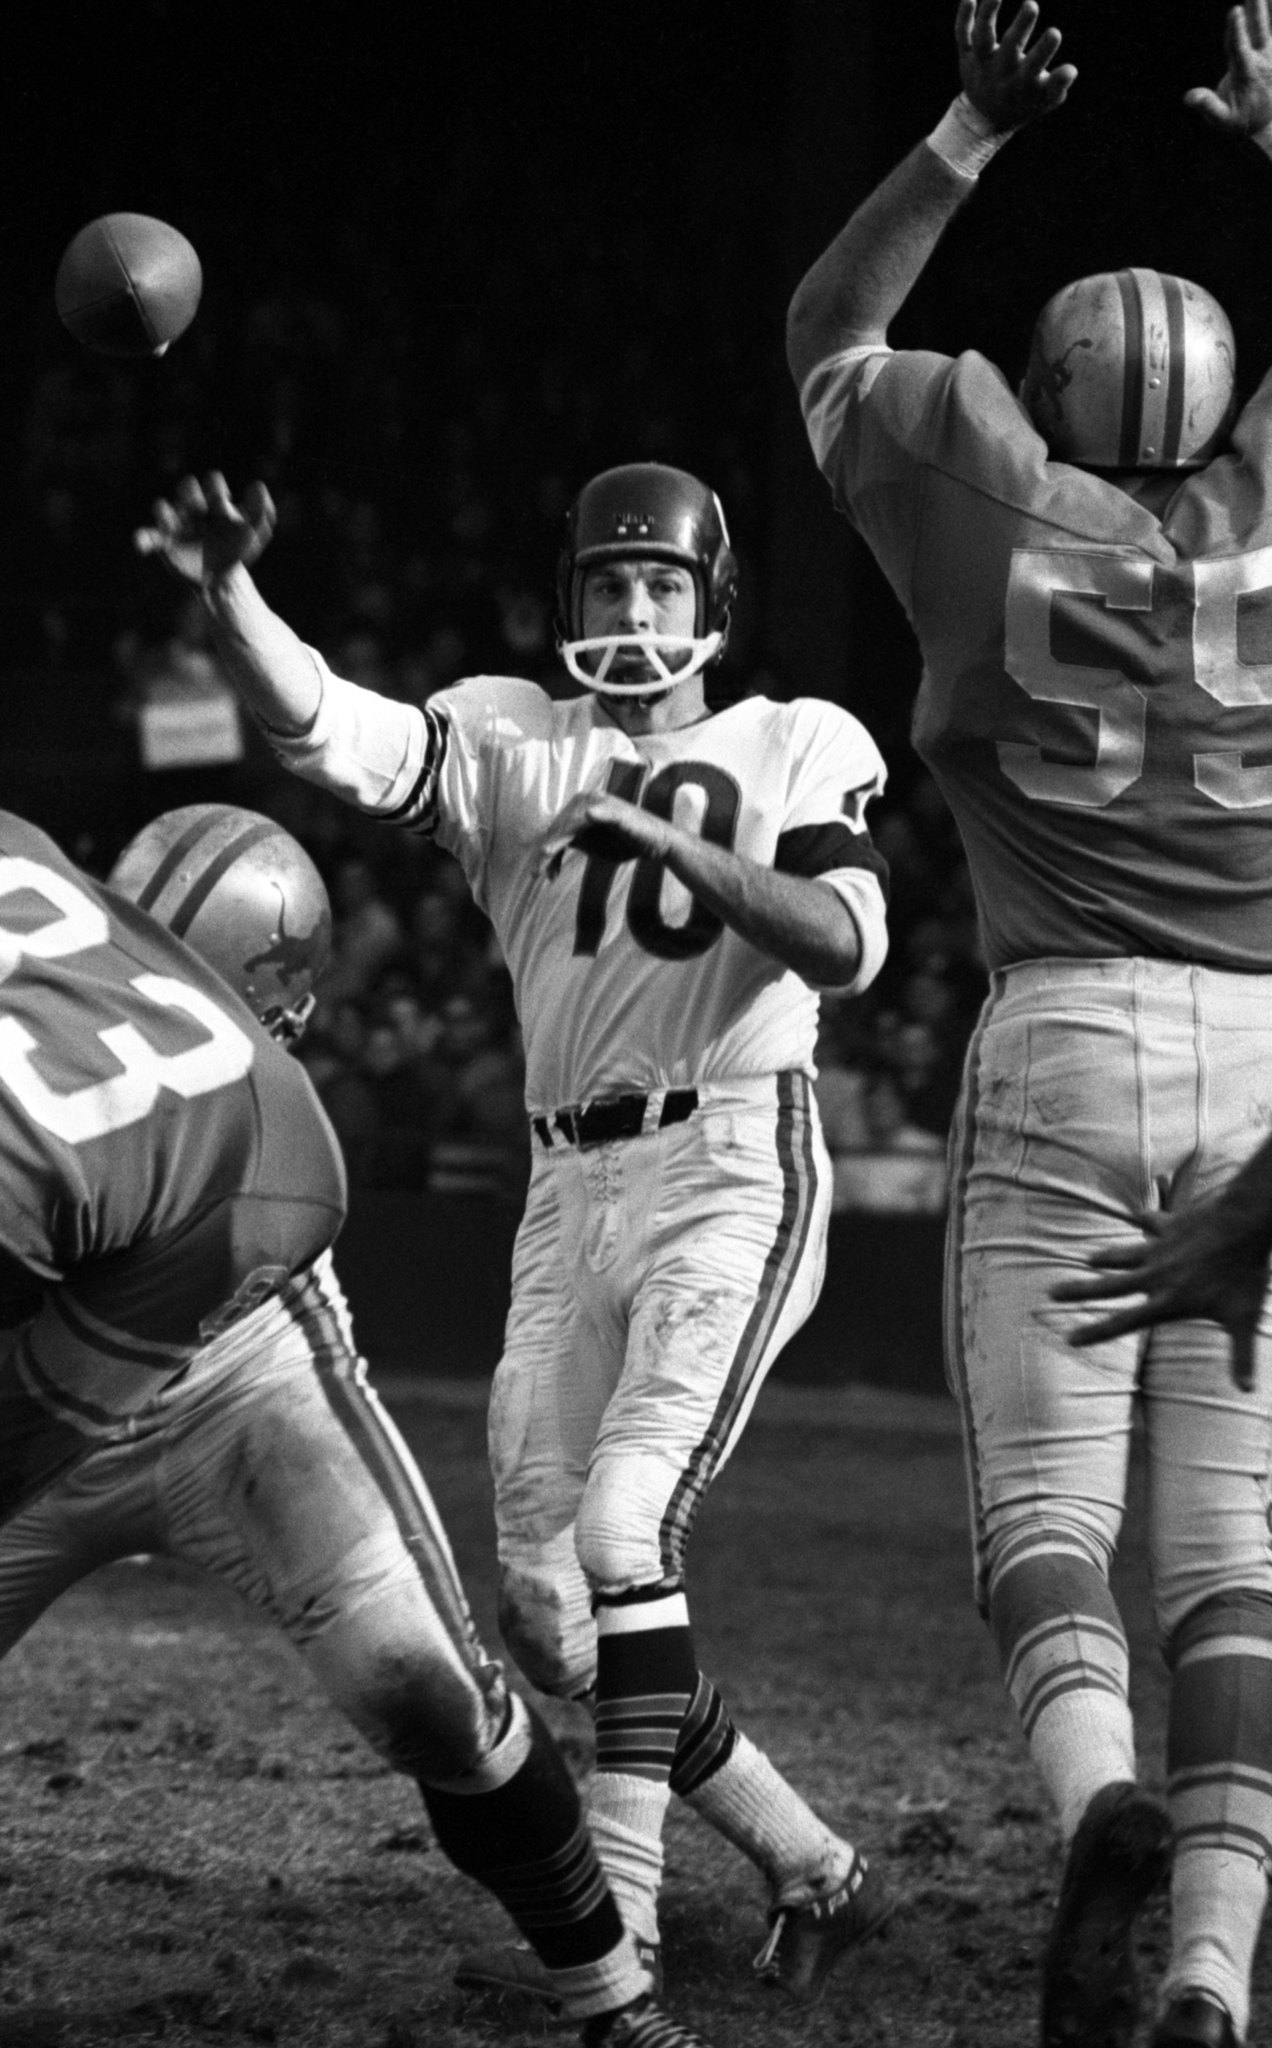 Former Chicago Bears Qb Rudy Bukich 85 Dies Chicago